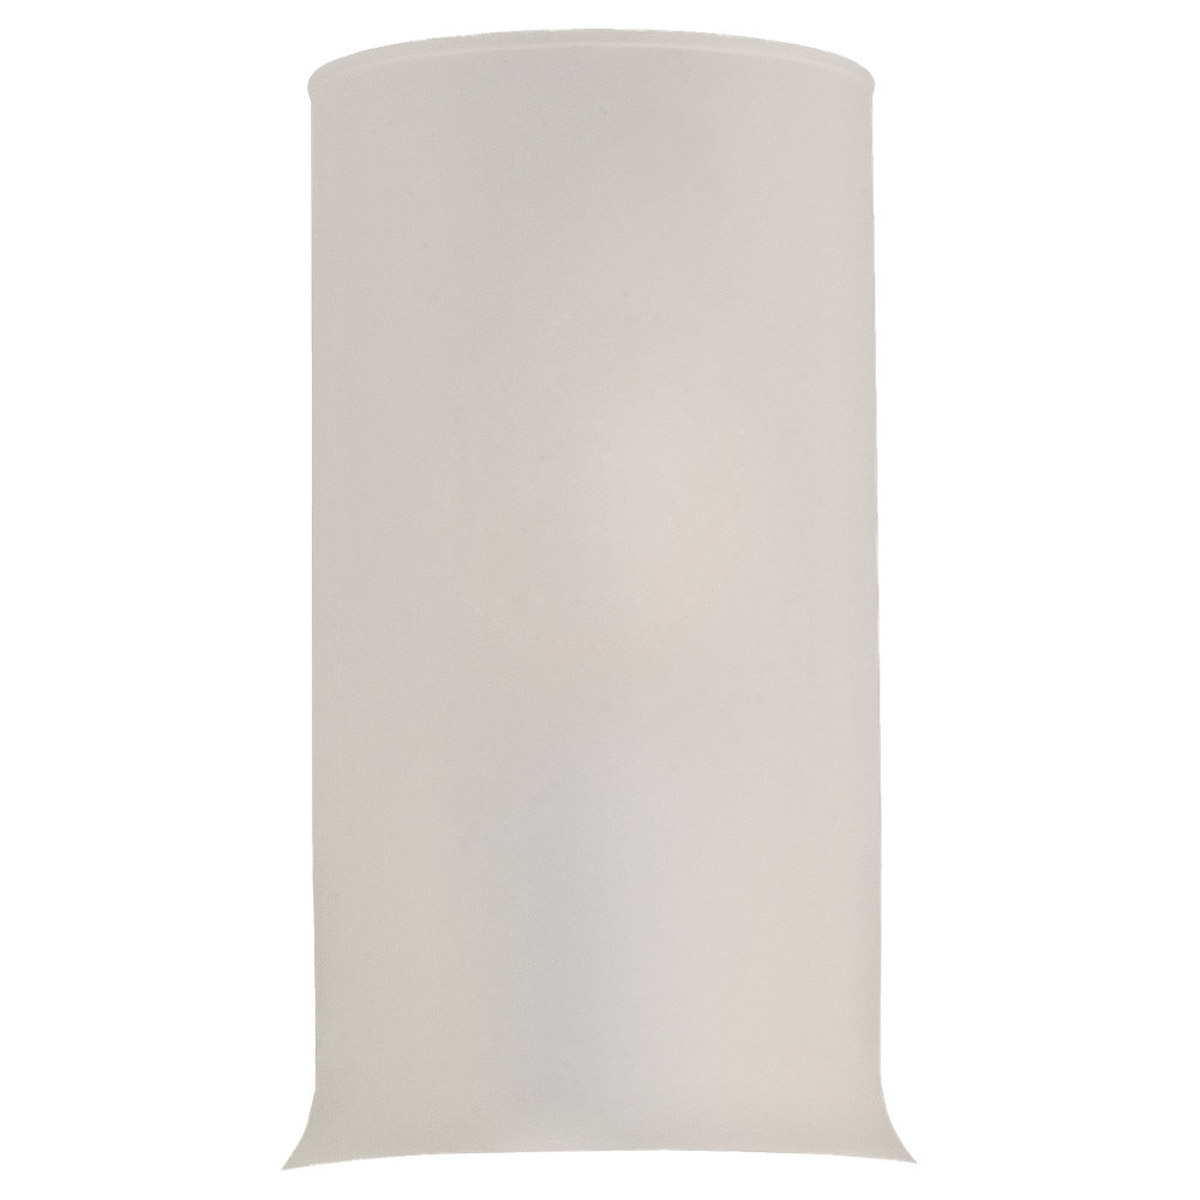 Sea Gull Lighting Glass Shade Glass Shade 90020-619